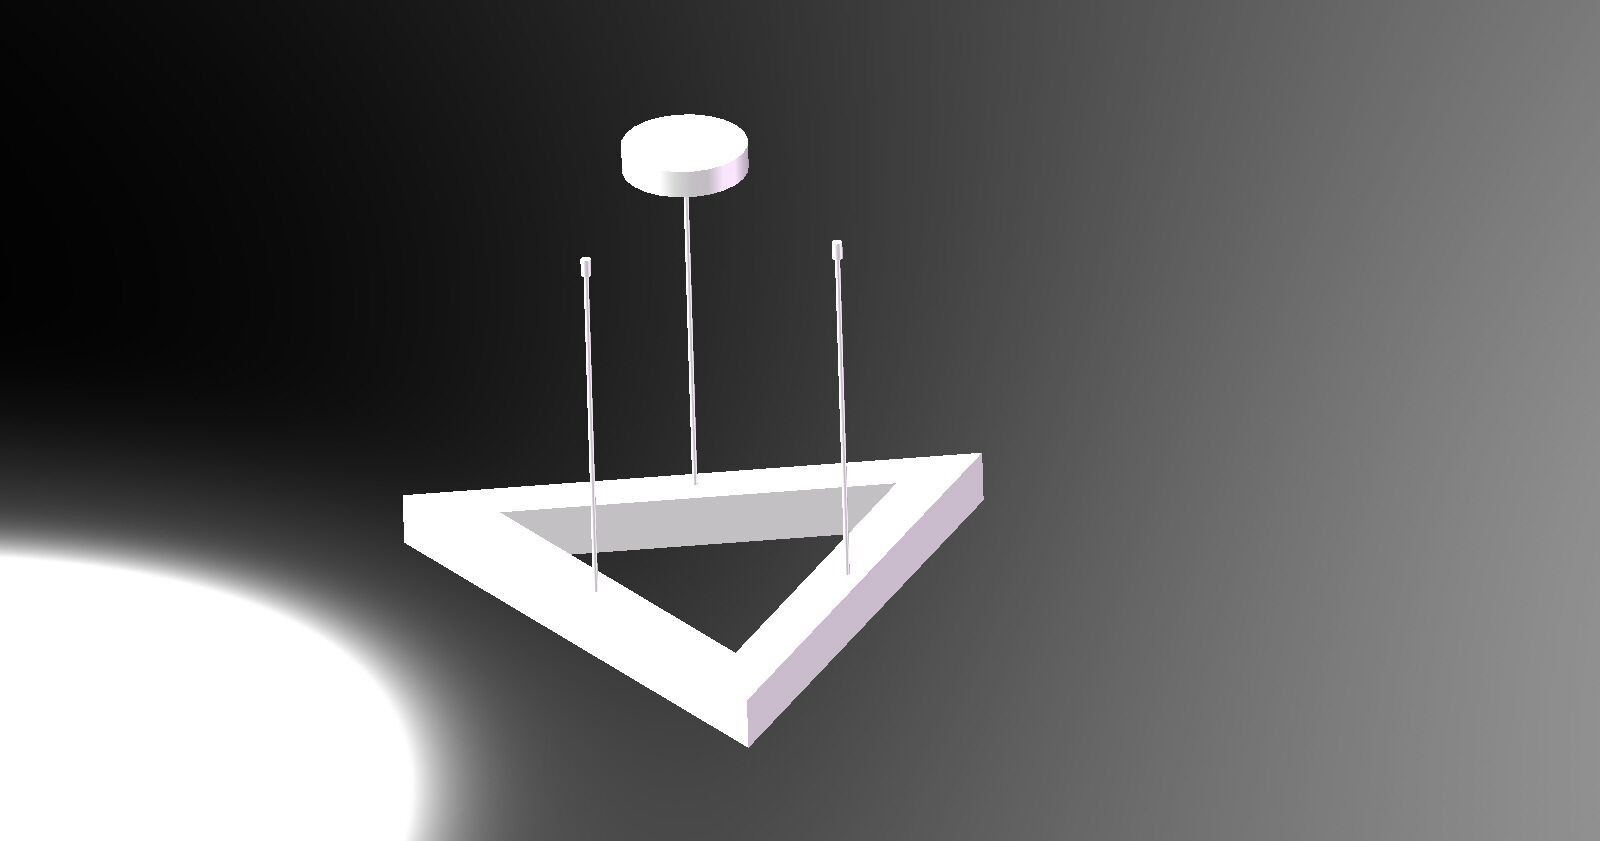 TRIANGLE LED DECORATIVE LIGHT WITH SUSPENDED WAY LL018890S-90W